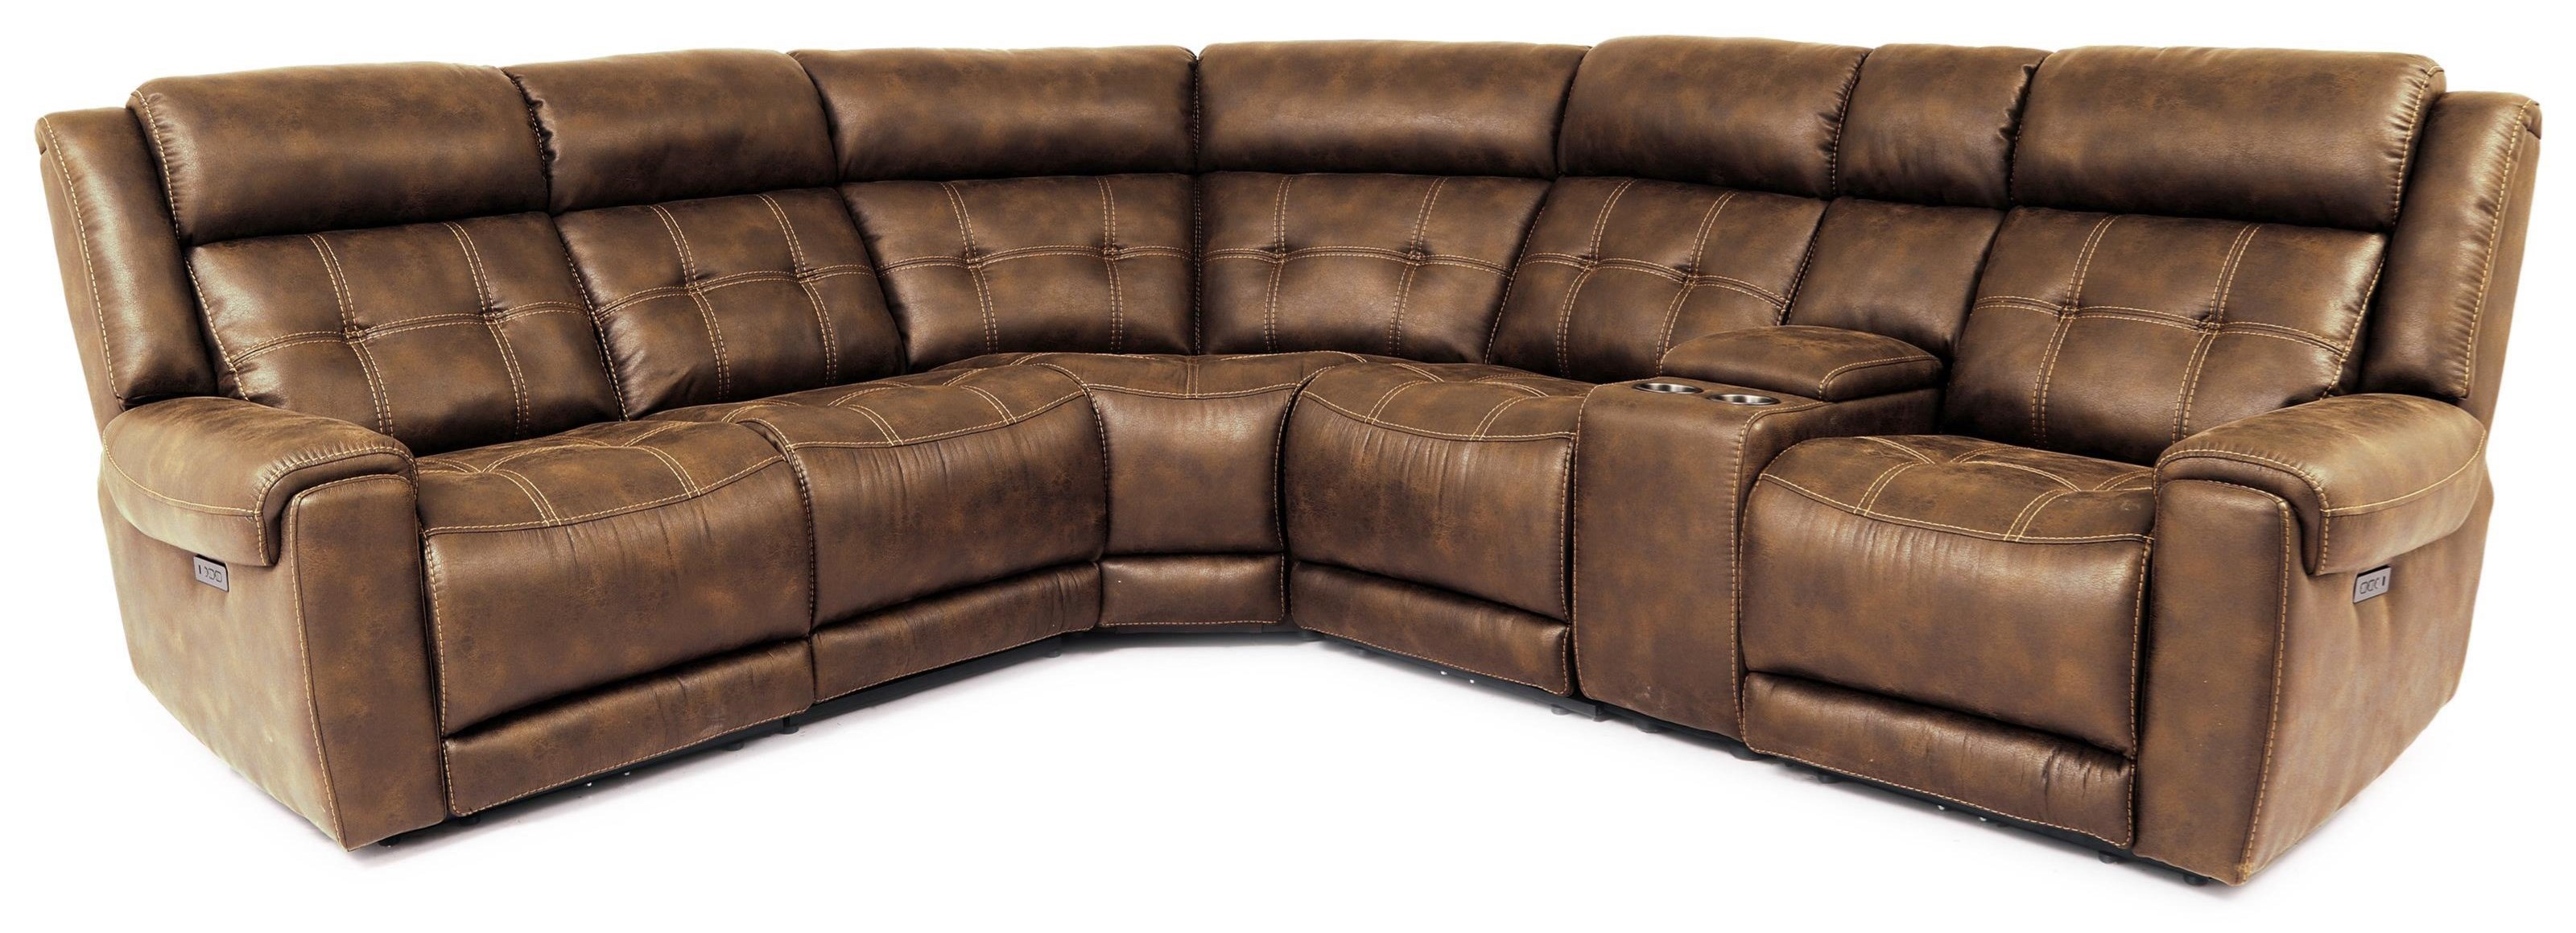 70115 6-Piece Power Reclining Sectional by Cheers at Sam Levitz Outlet